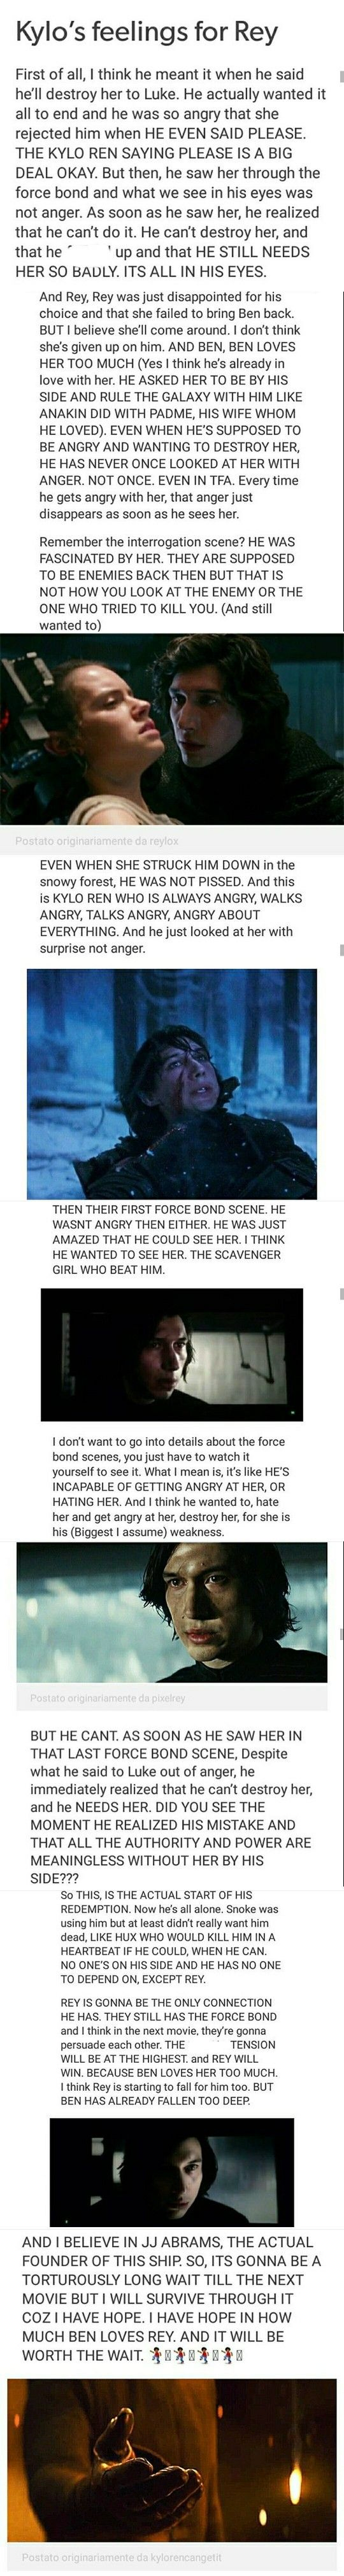 Kylo is so in love with her. I have always said that it'll be way easier for Rey to kill him to win the war than for him to kill her to win the war. I do not believe for one second that he can actually hurt her. This is a boy who has been more or less abanonded all his life by the people who were supposed to care for him the most, and here's this girl who is strong enough to save him and who will not leave him like everyone else has.